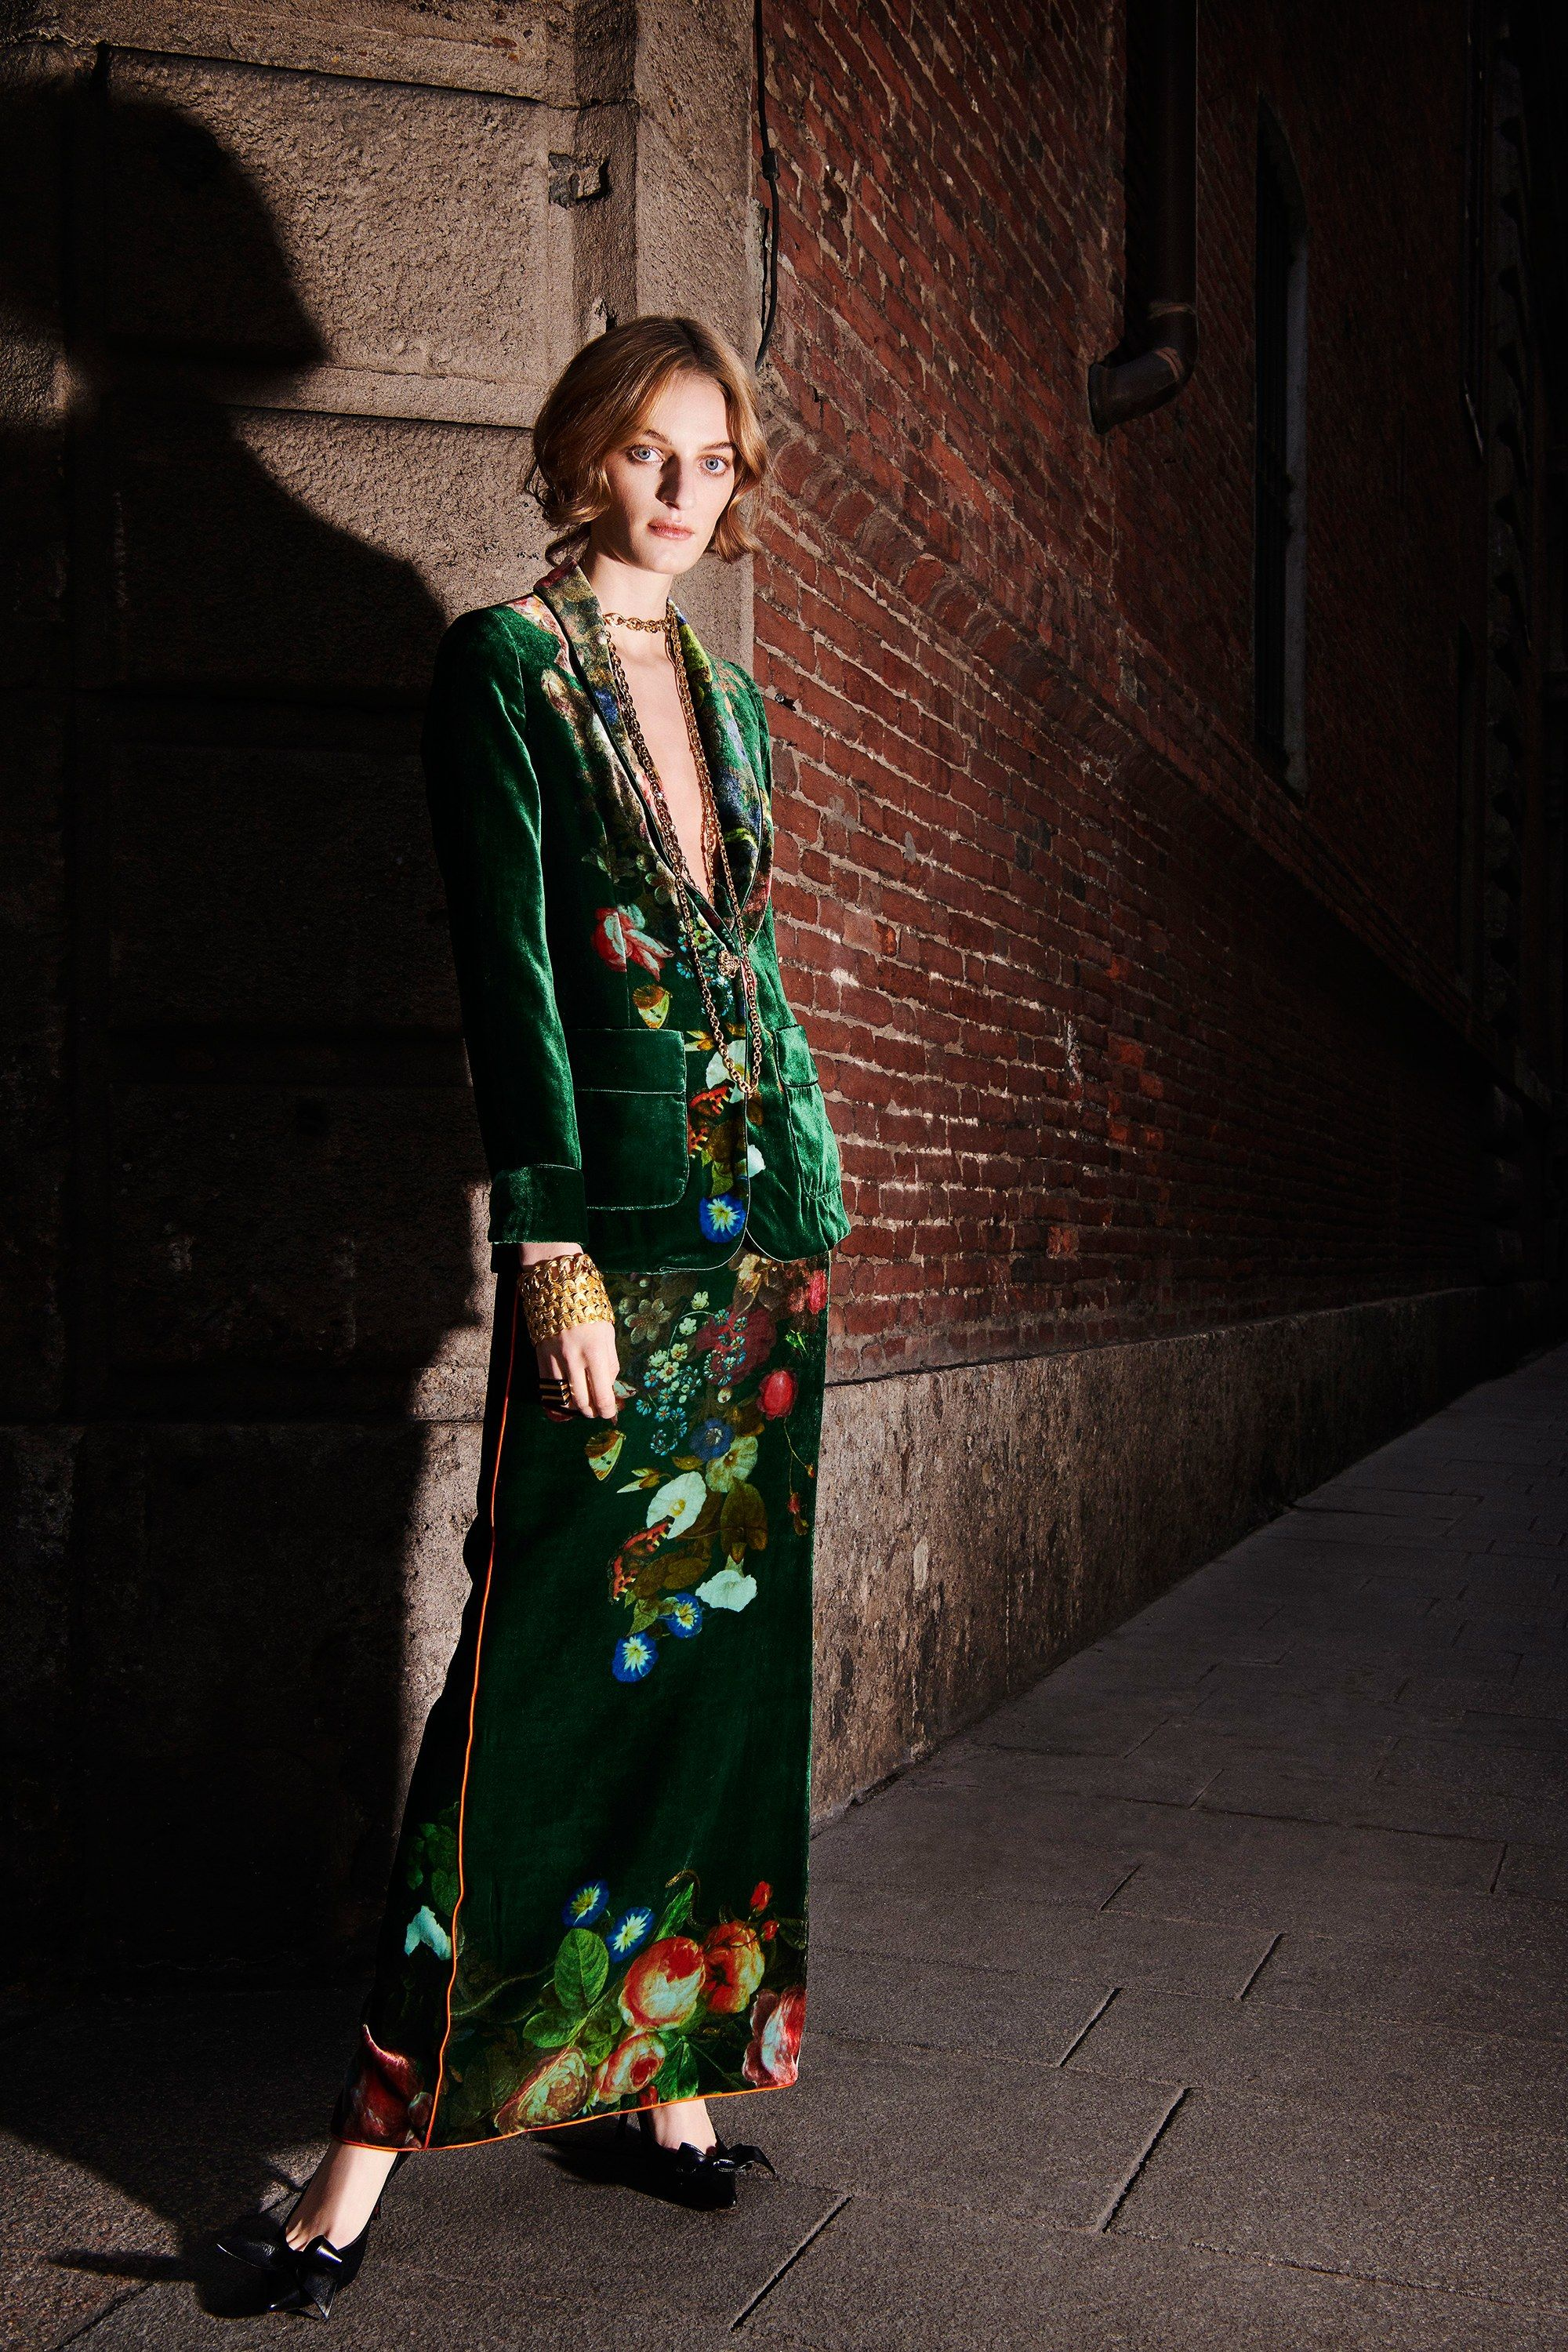 Female sleepers: description, models, what to wear 67